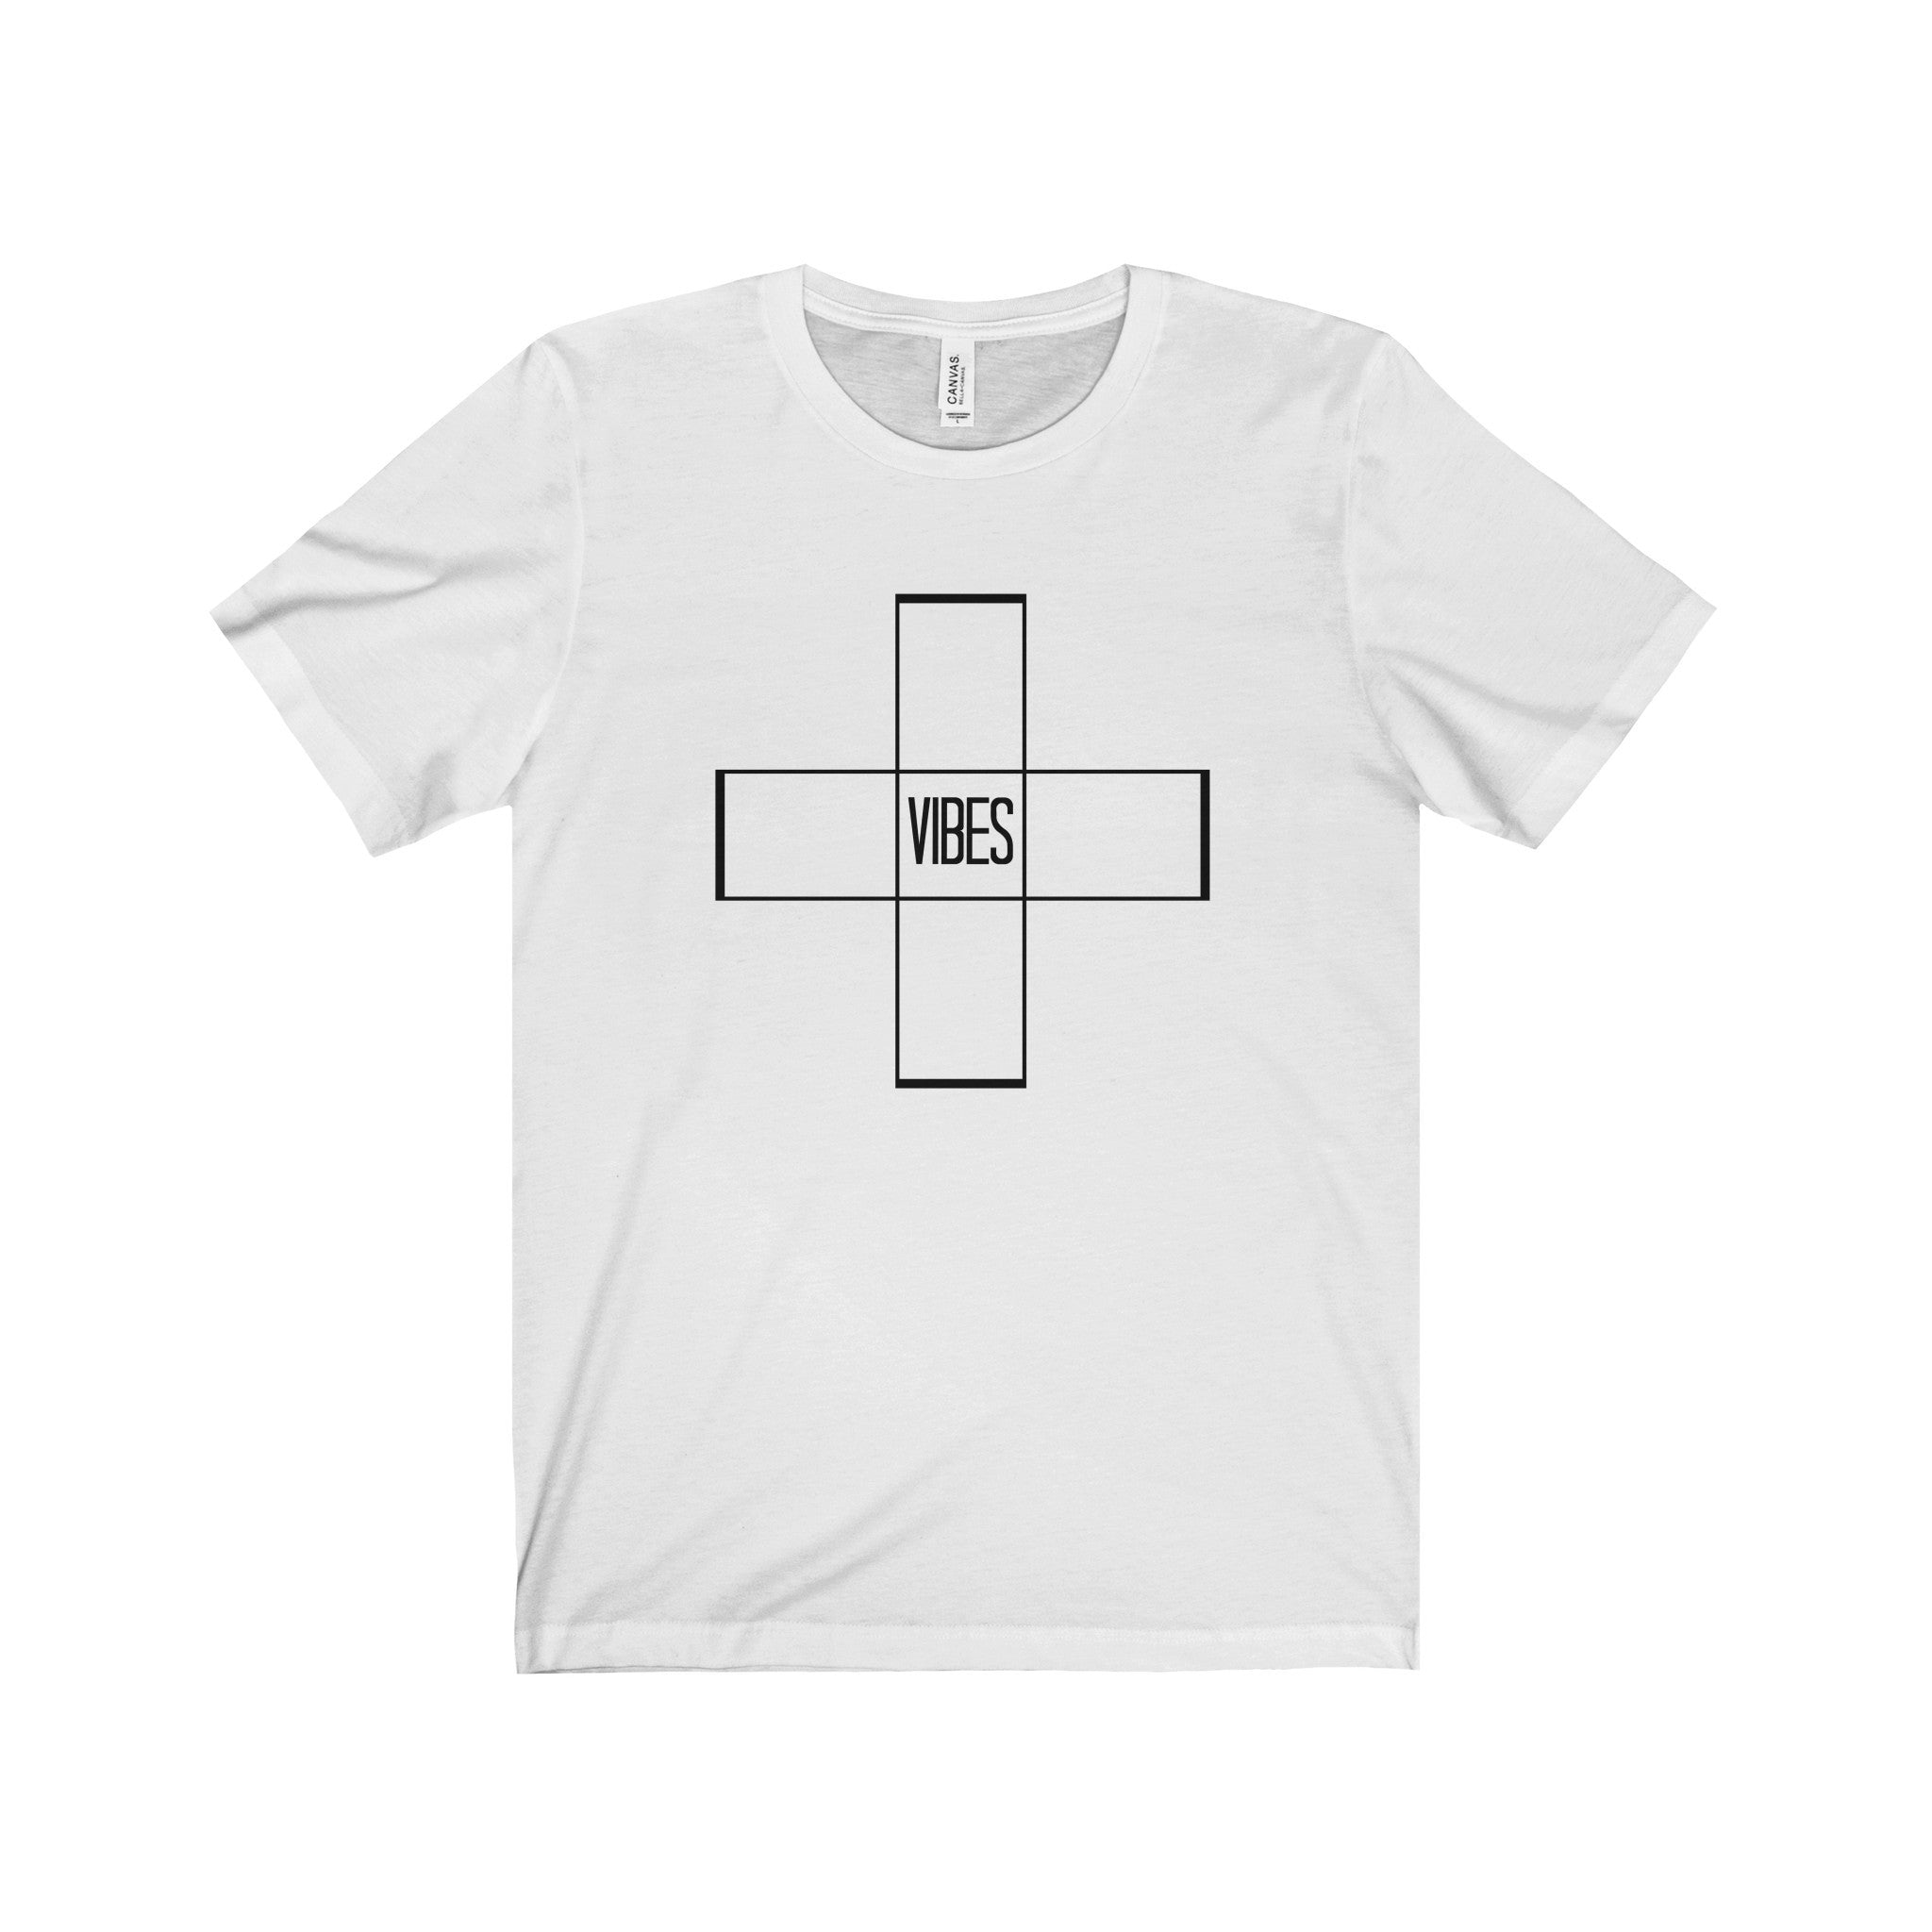 Postive Vibes Outline Black Letter Tee (5 colors available)